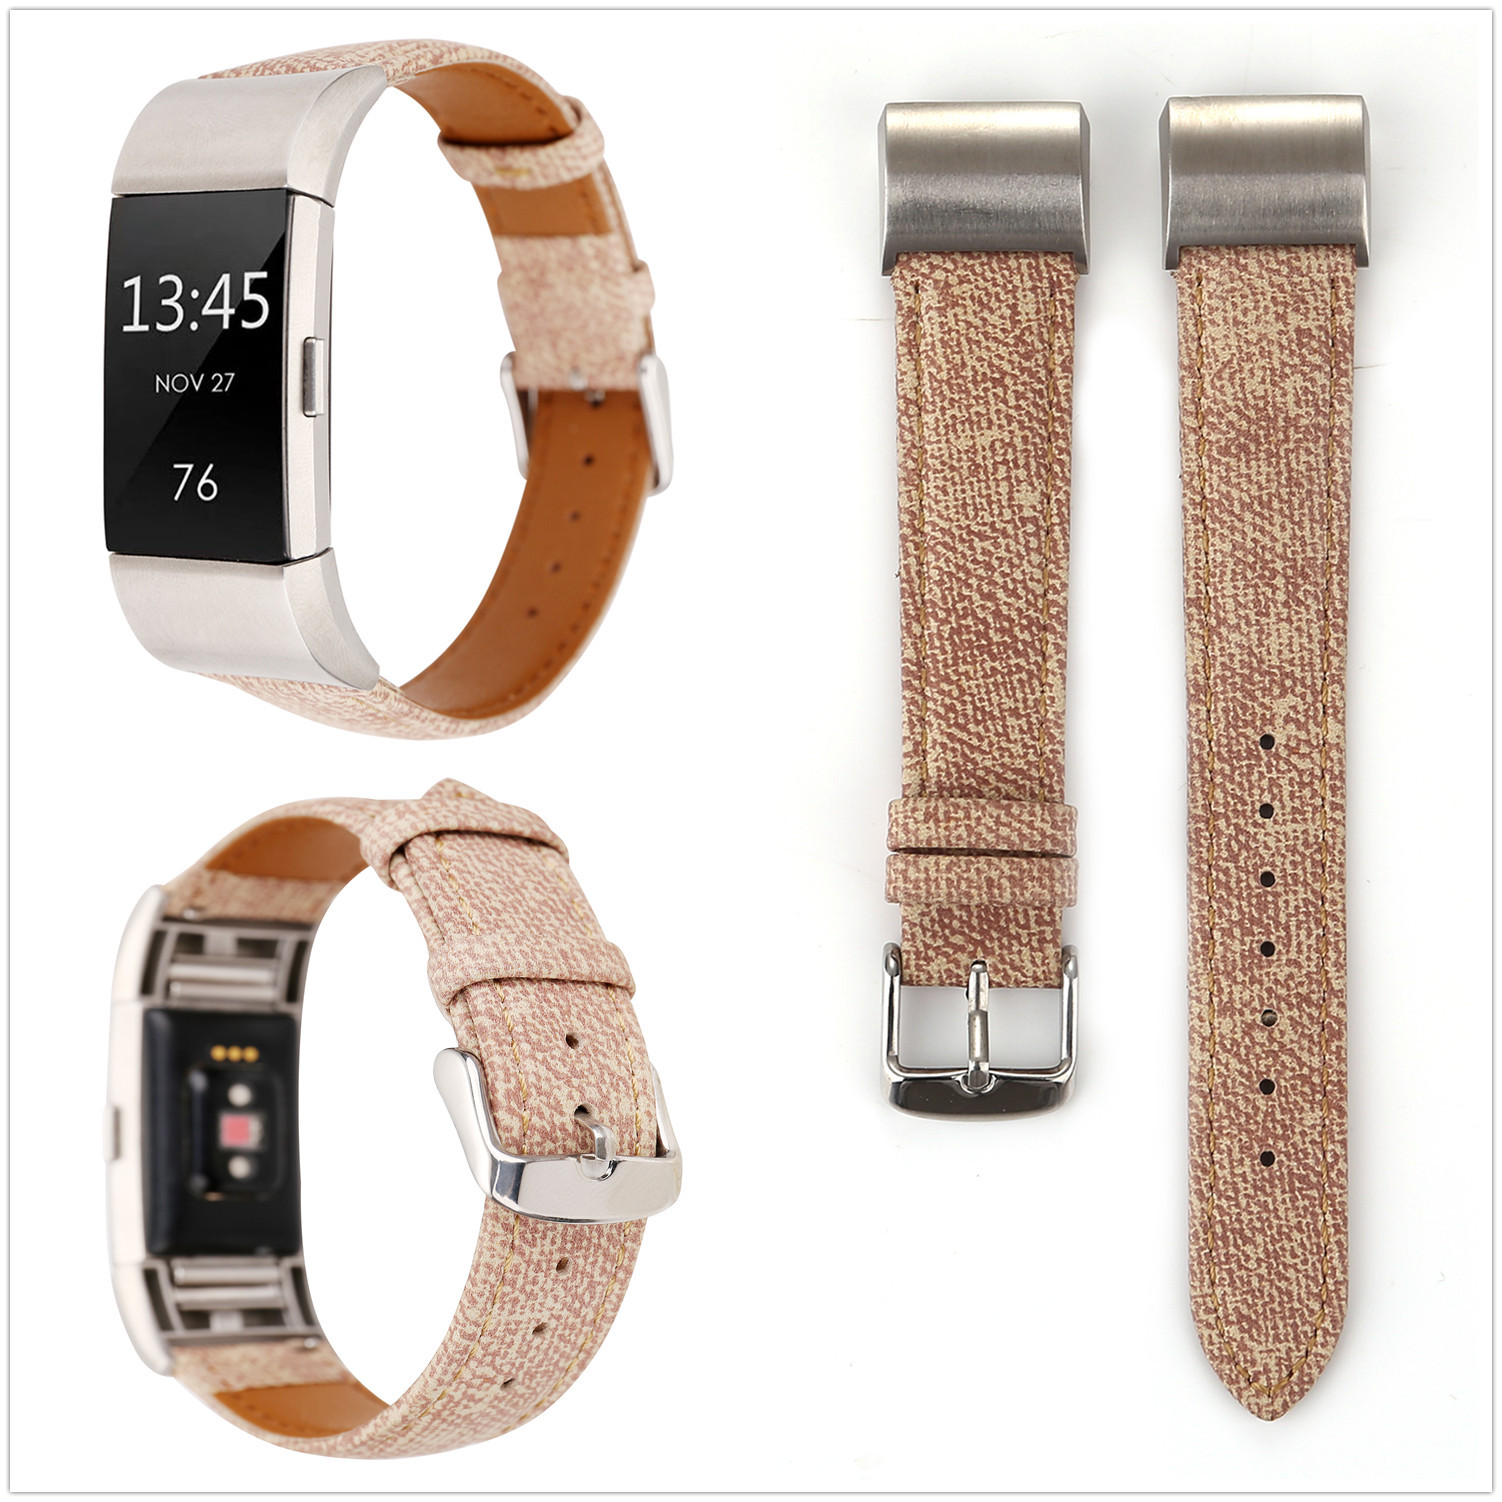 Applicable Fitbit Charge2 Leather Watch Strap Smart Wearable Watch Strap Smart Watch Cowboy Pattern Leather Watch Strap